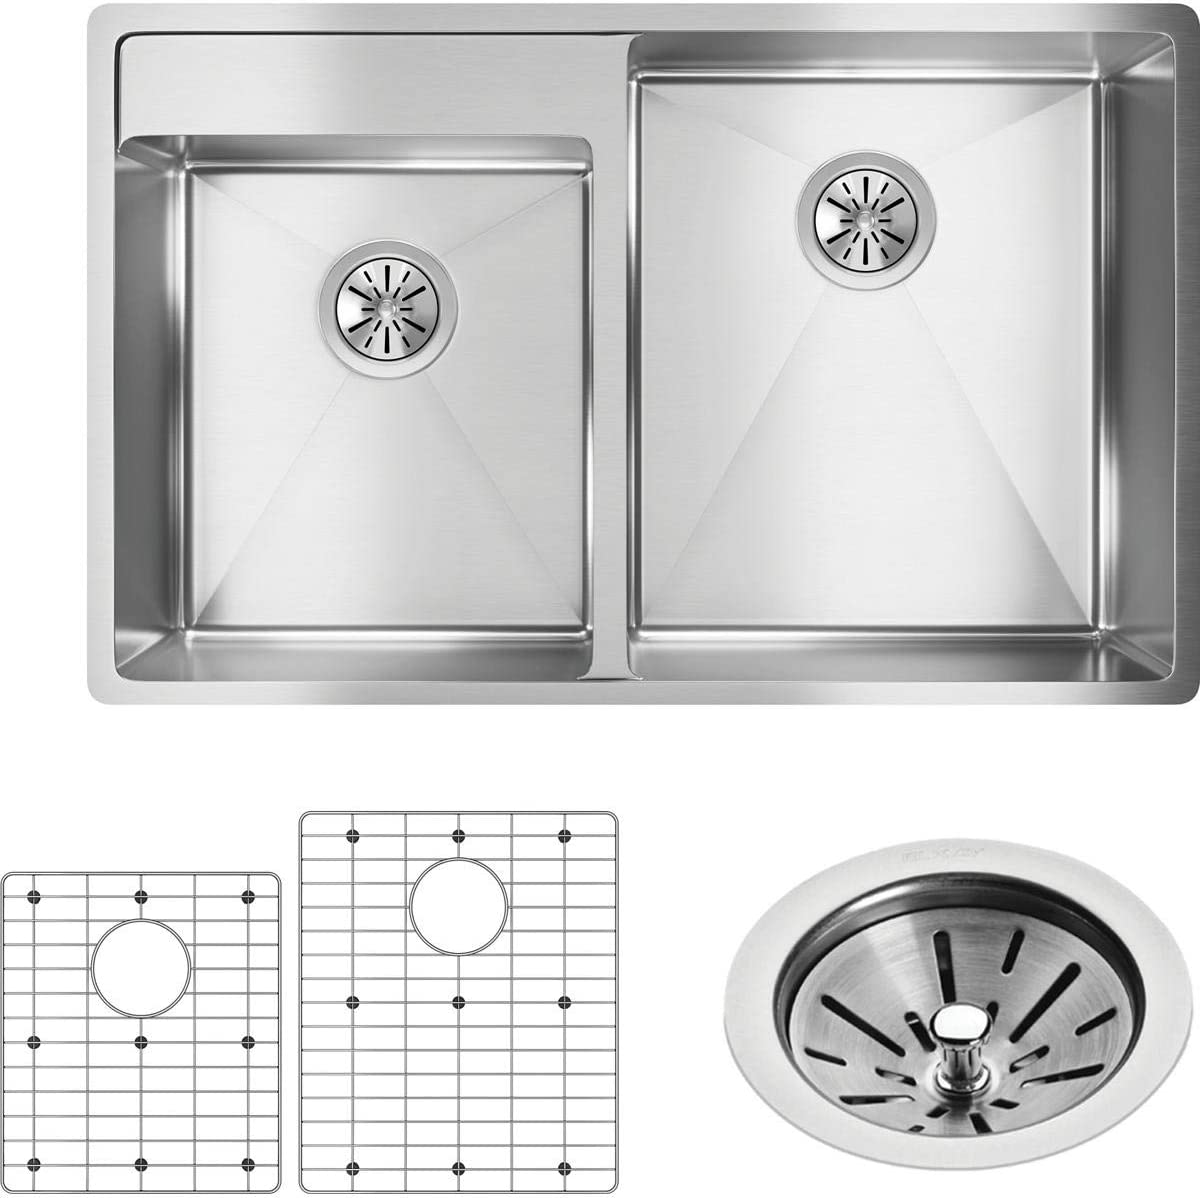 Elkay Crosstown ECTRUD31199LDBG0 Offset Double Bowl Undermount Stainless Steel Sink Kit with Water Deck